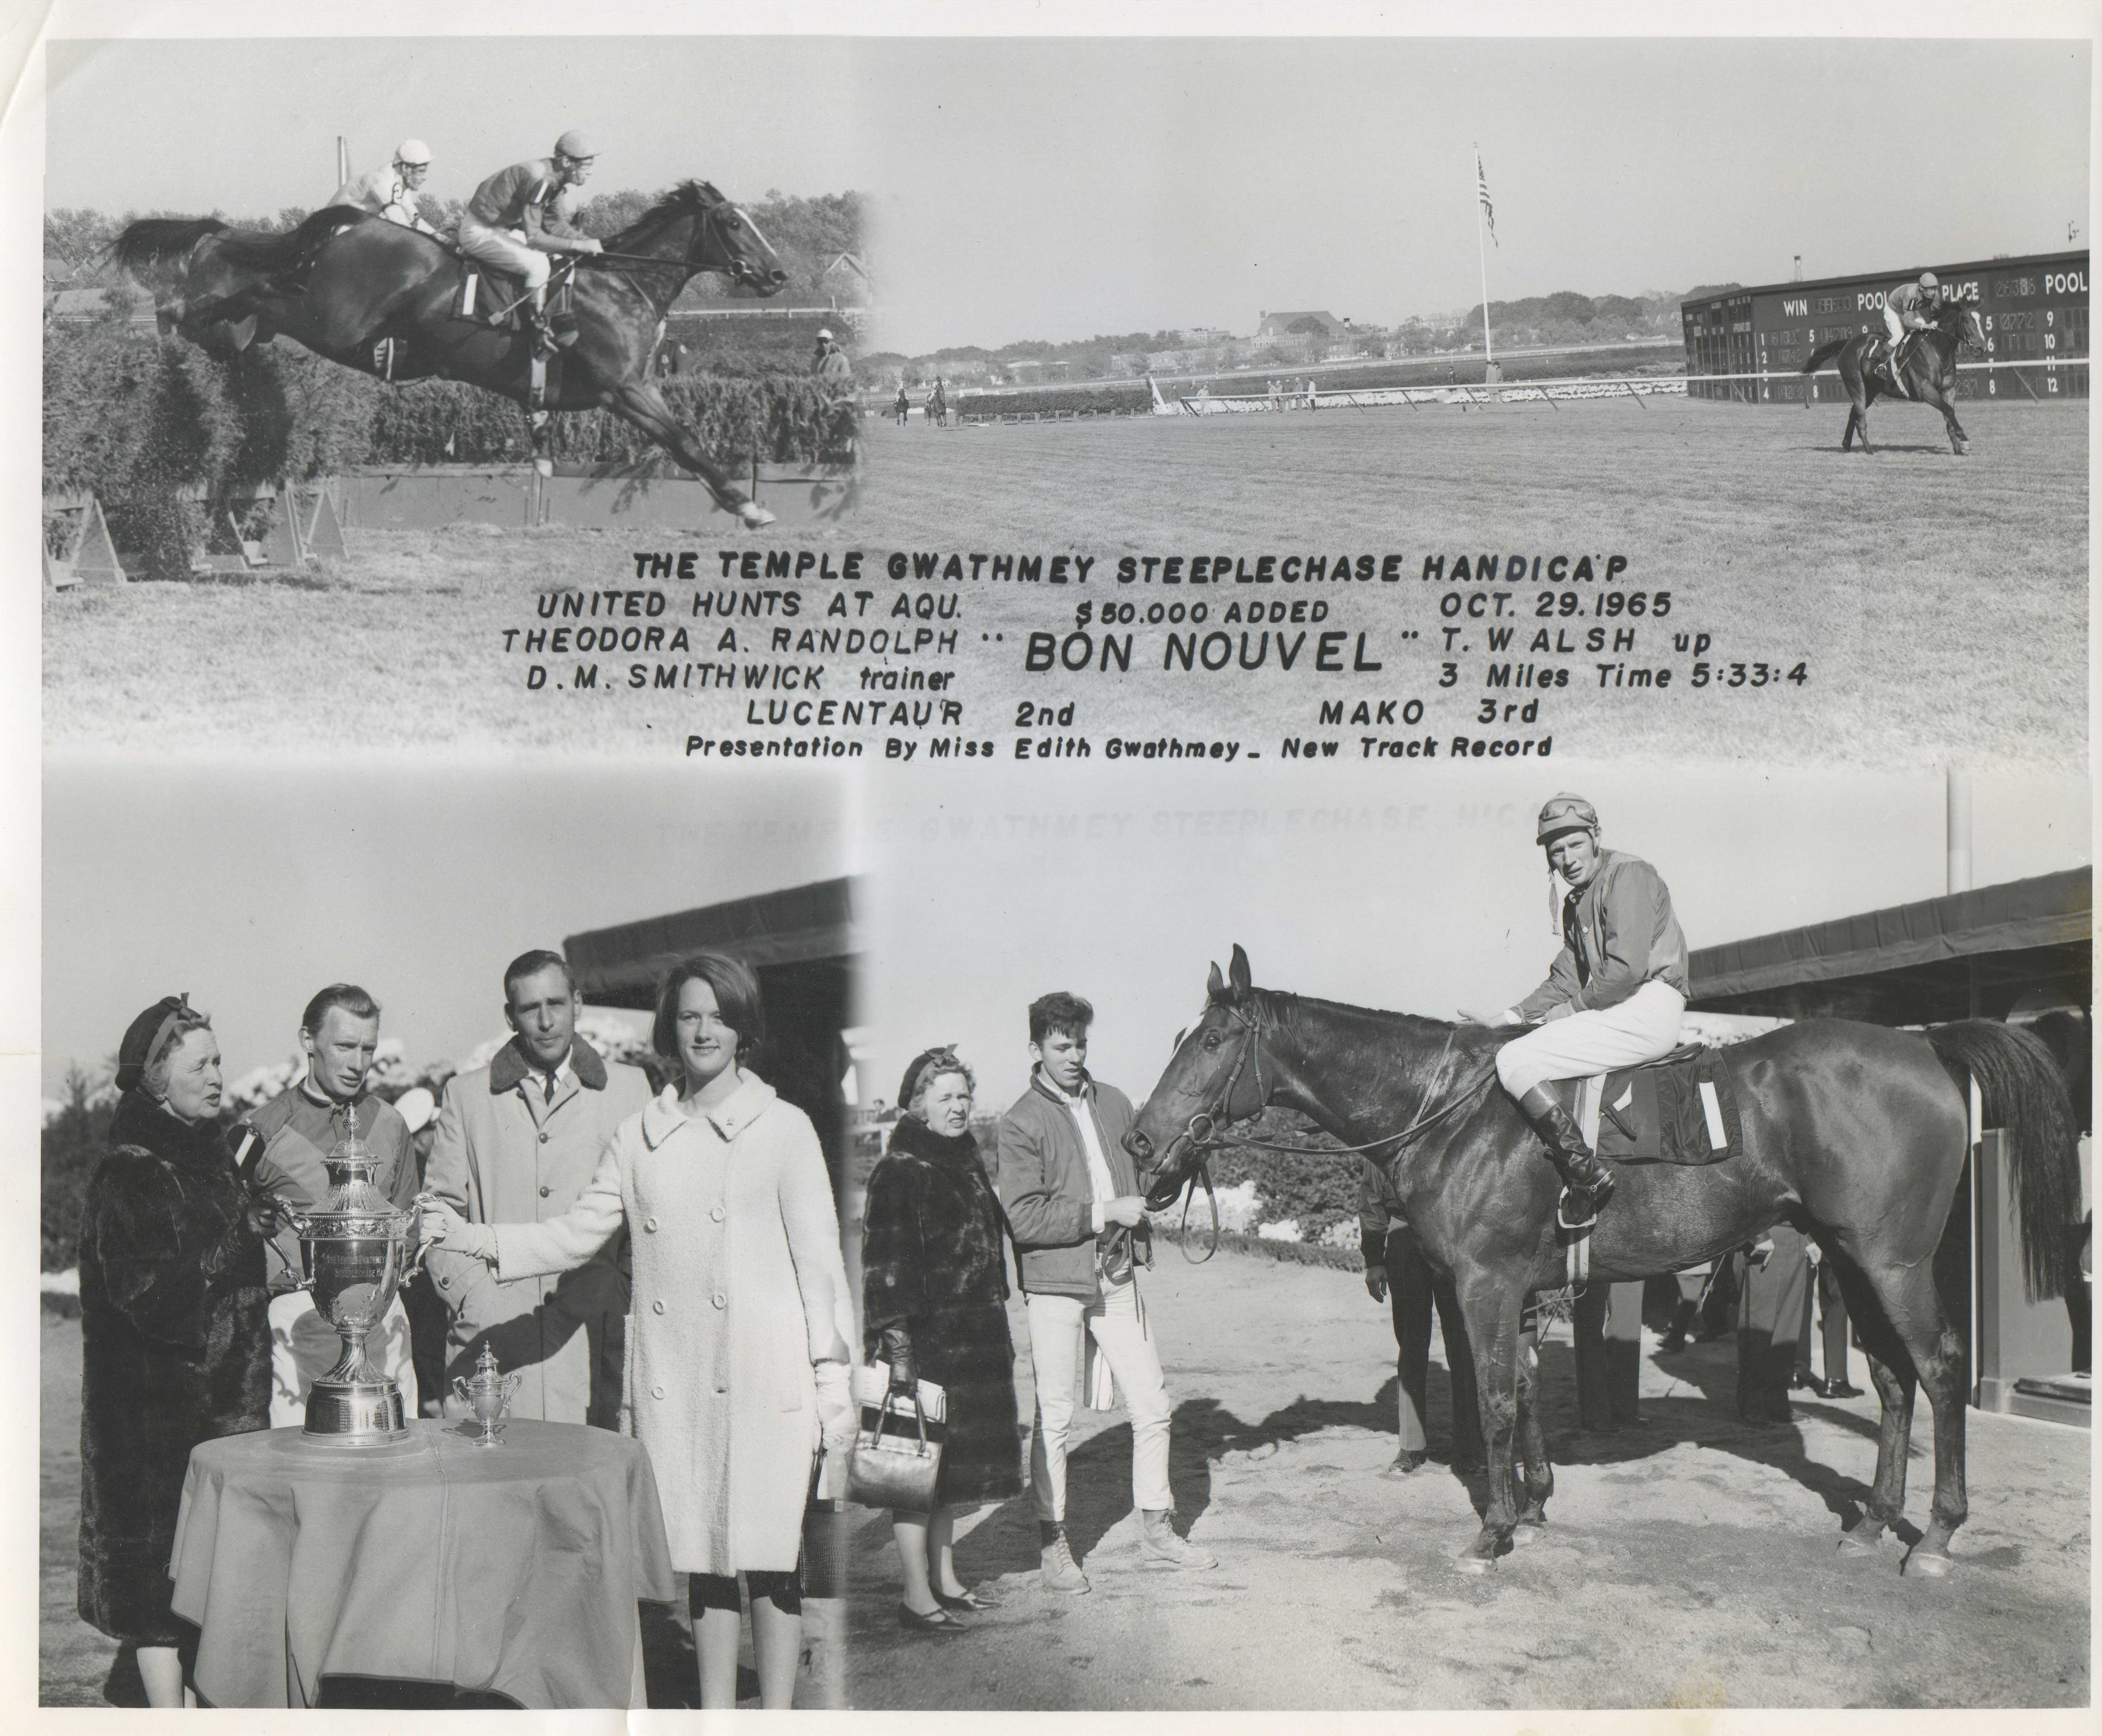 Win composite photograph for the 1965 Temple Gwathmey Steeplechase Handicap at the United Hunts at Aqueduct meet (NYRA/Museum Collection)